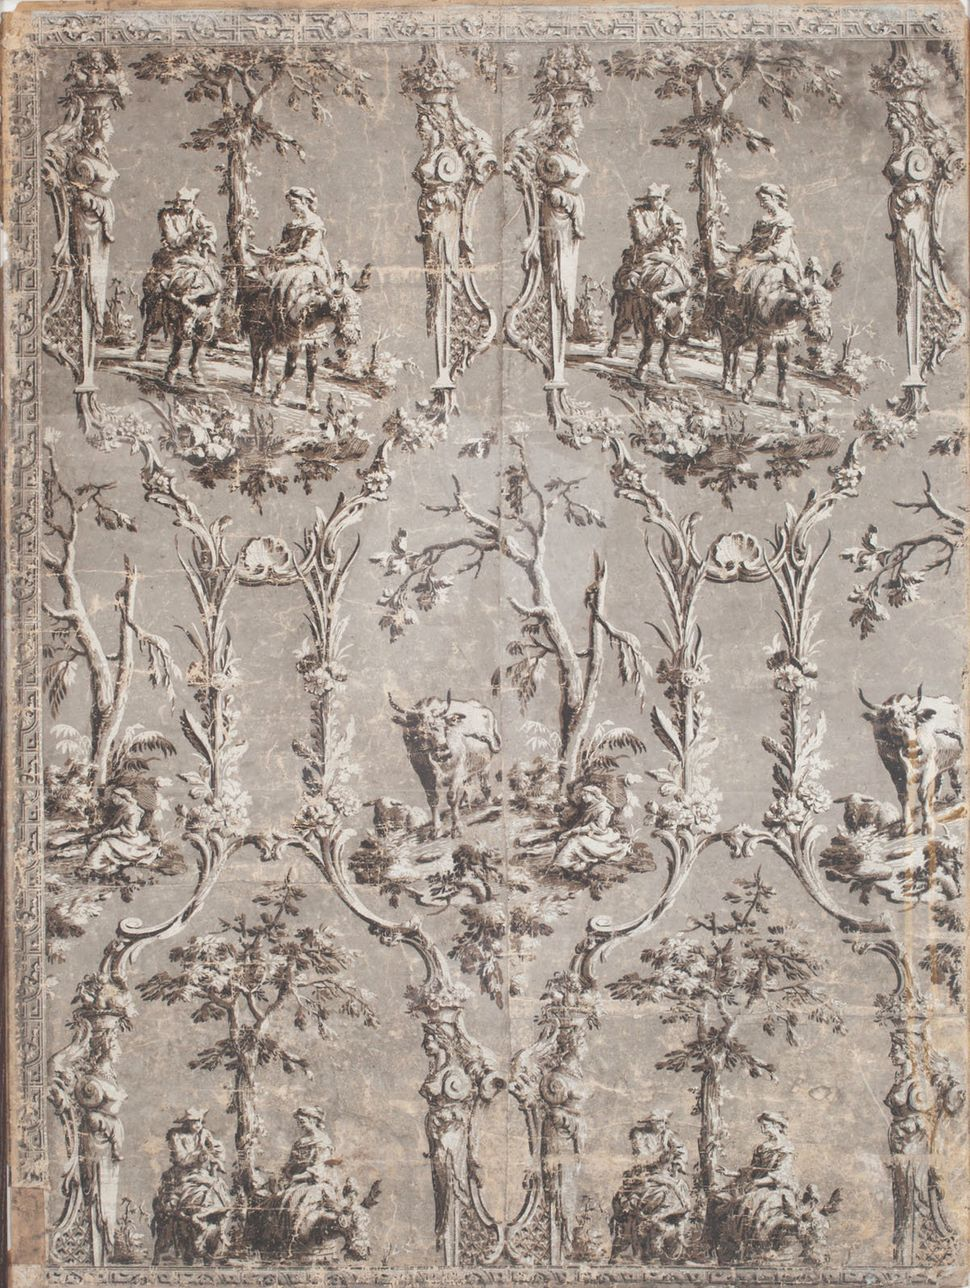 Fragment of wallpaper. This block printed pastoral landscape paper depicts vignettes of a man and woman riding donkeys altern